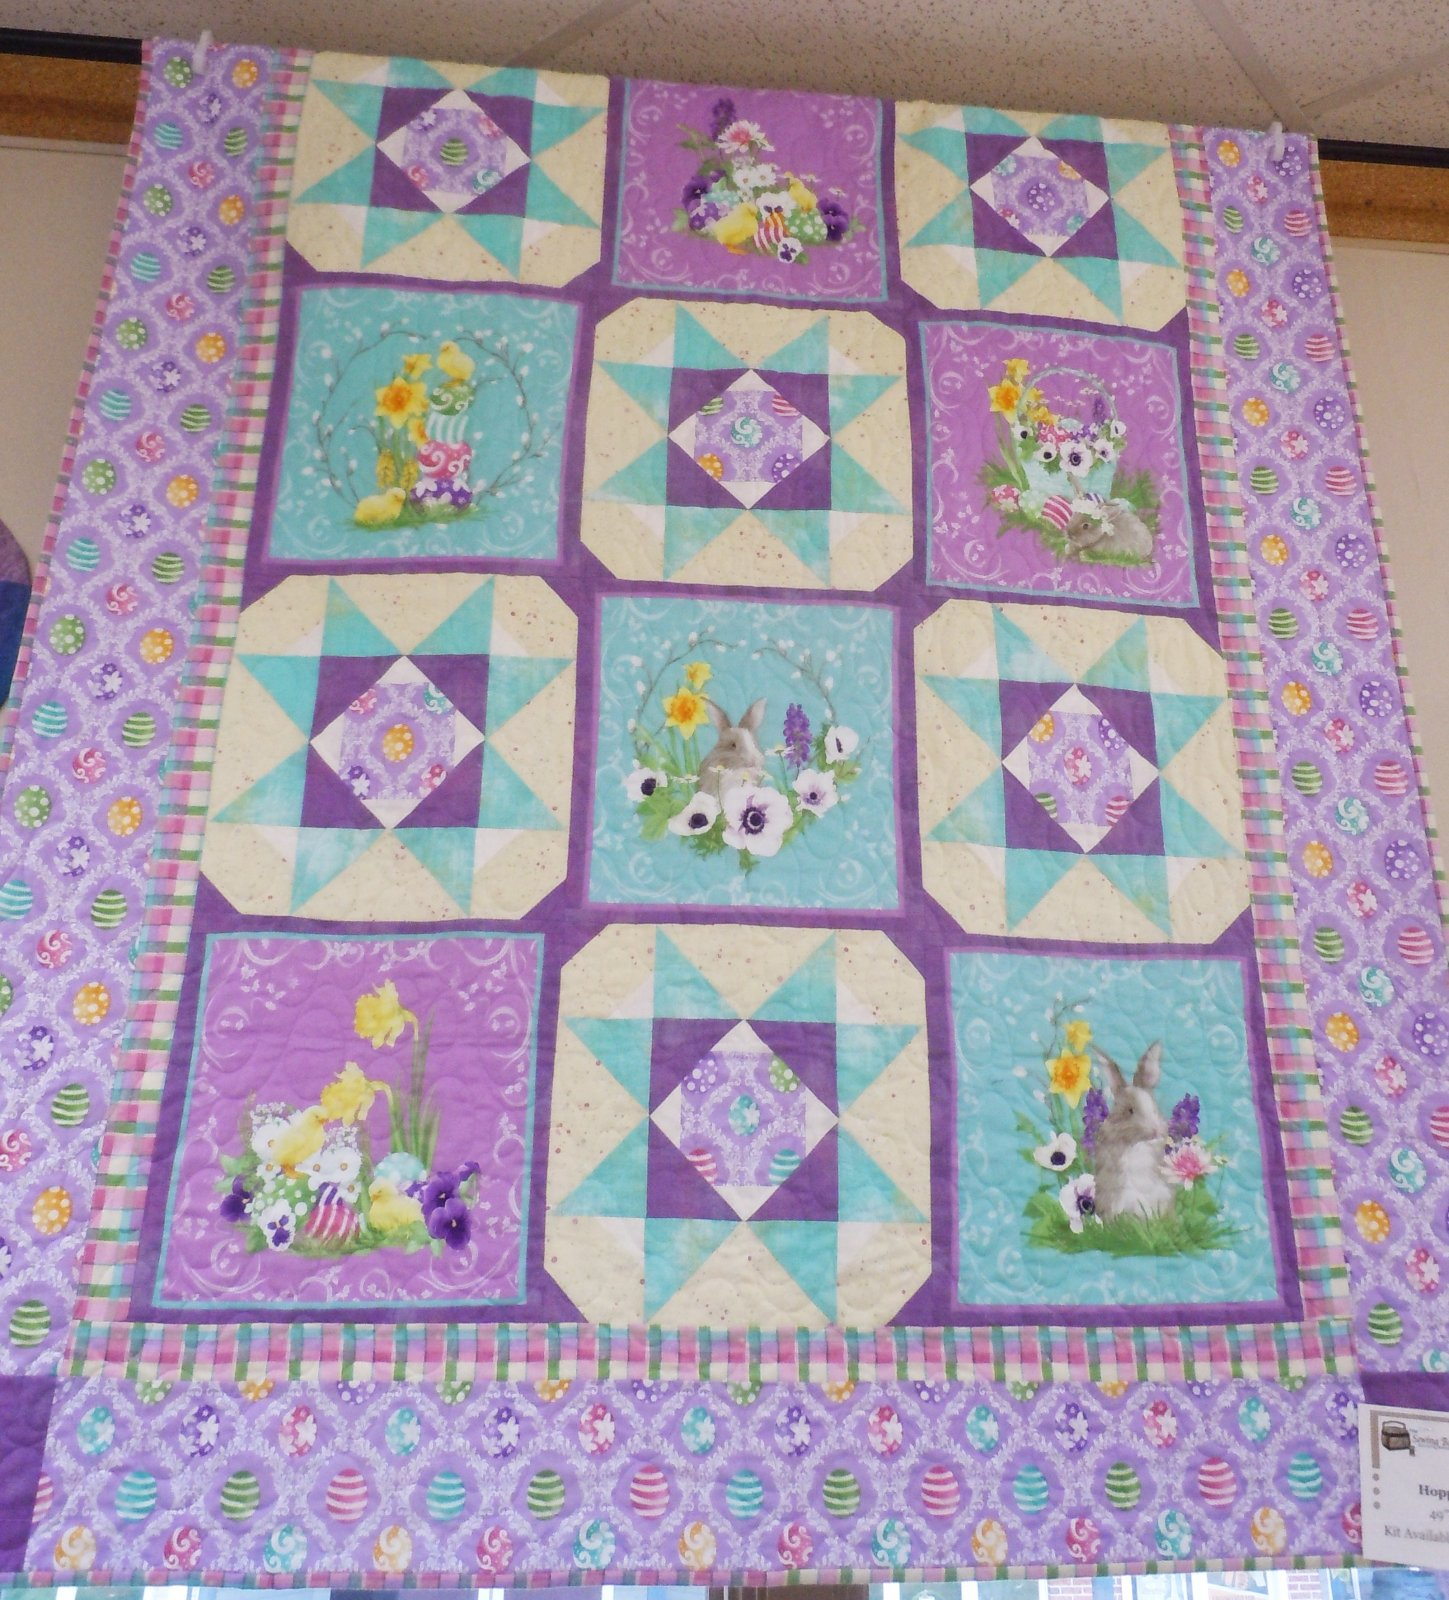 Kit-Hoppy Easter 49W x 61L